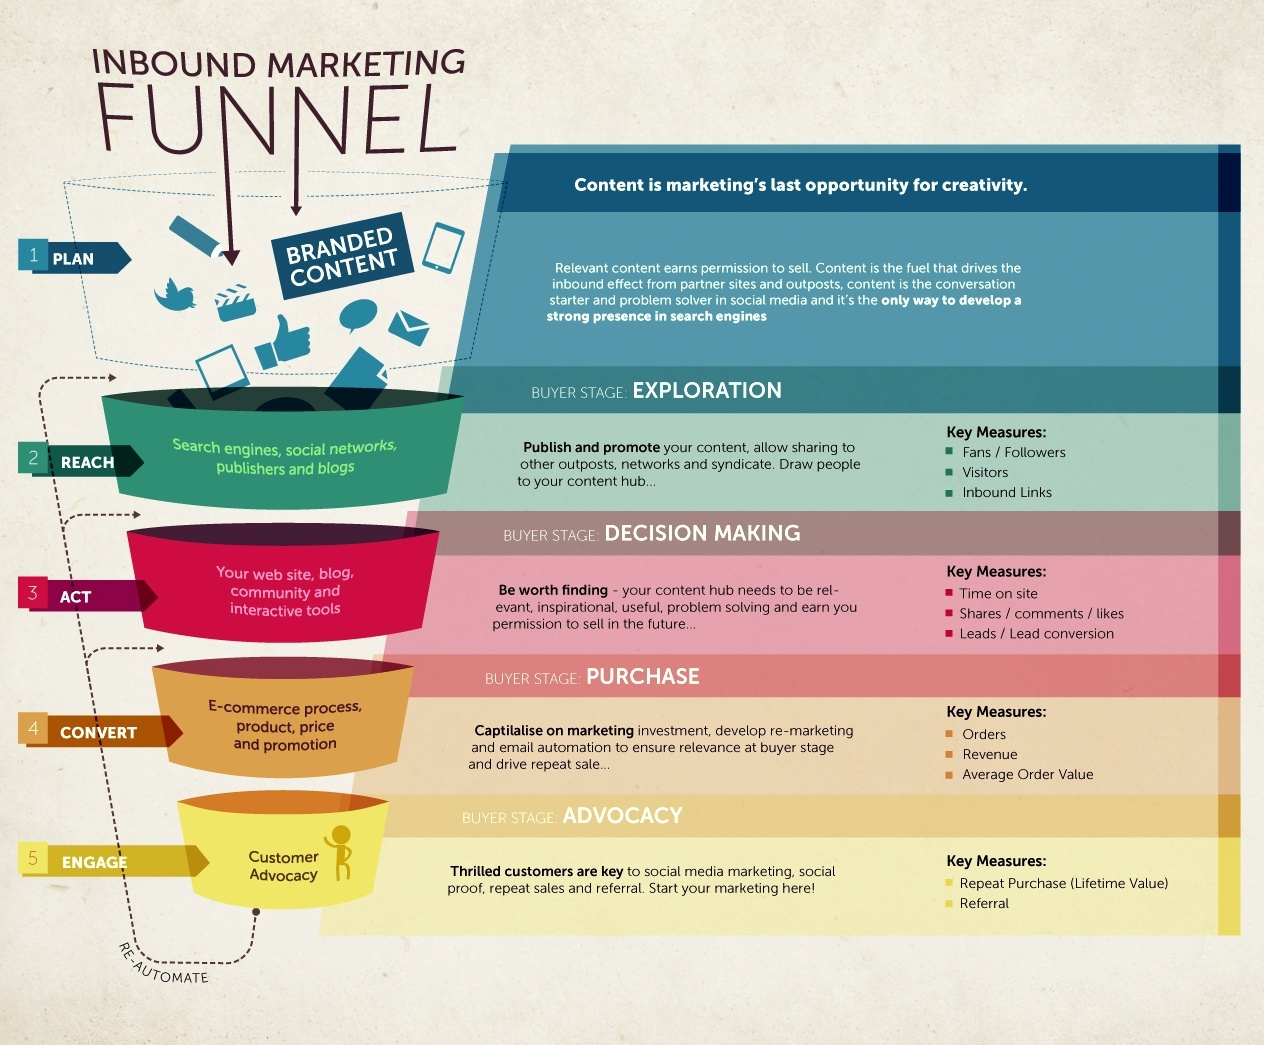 agence inbound marketing.jpg